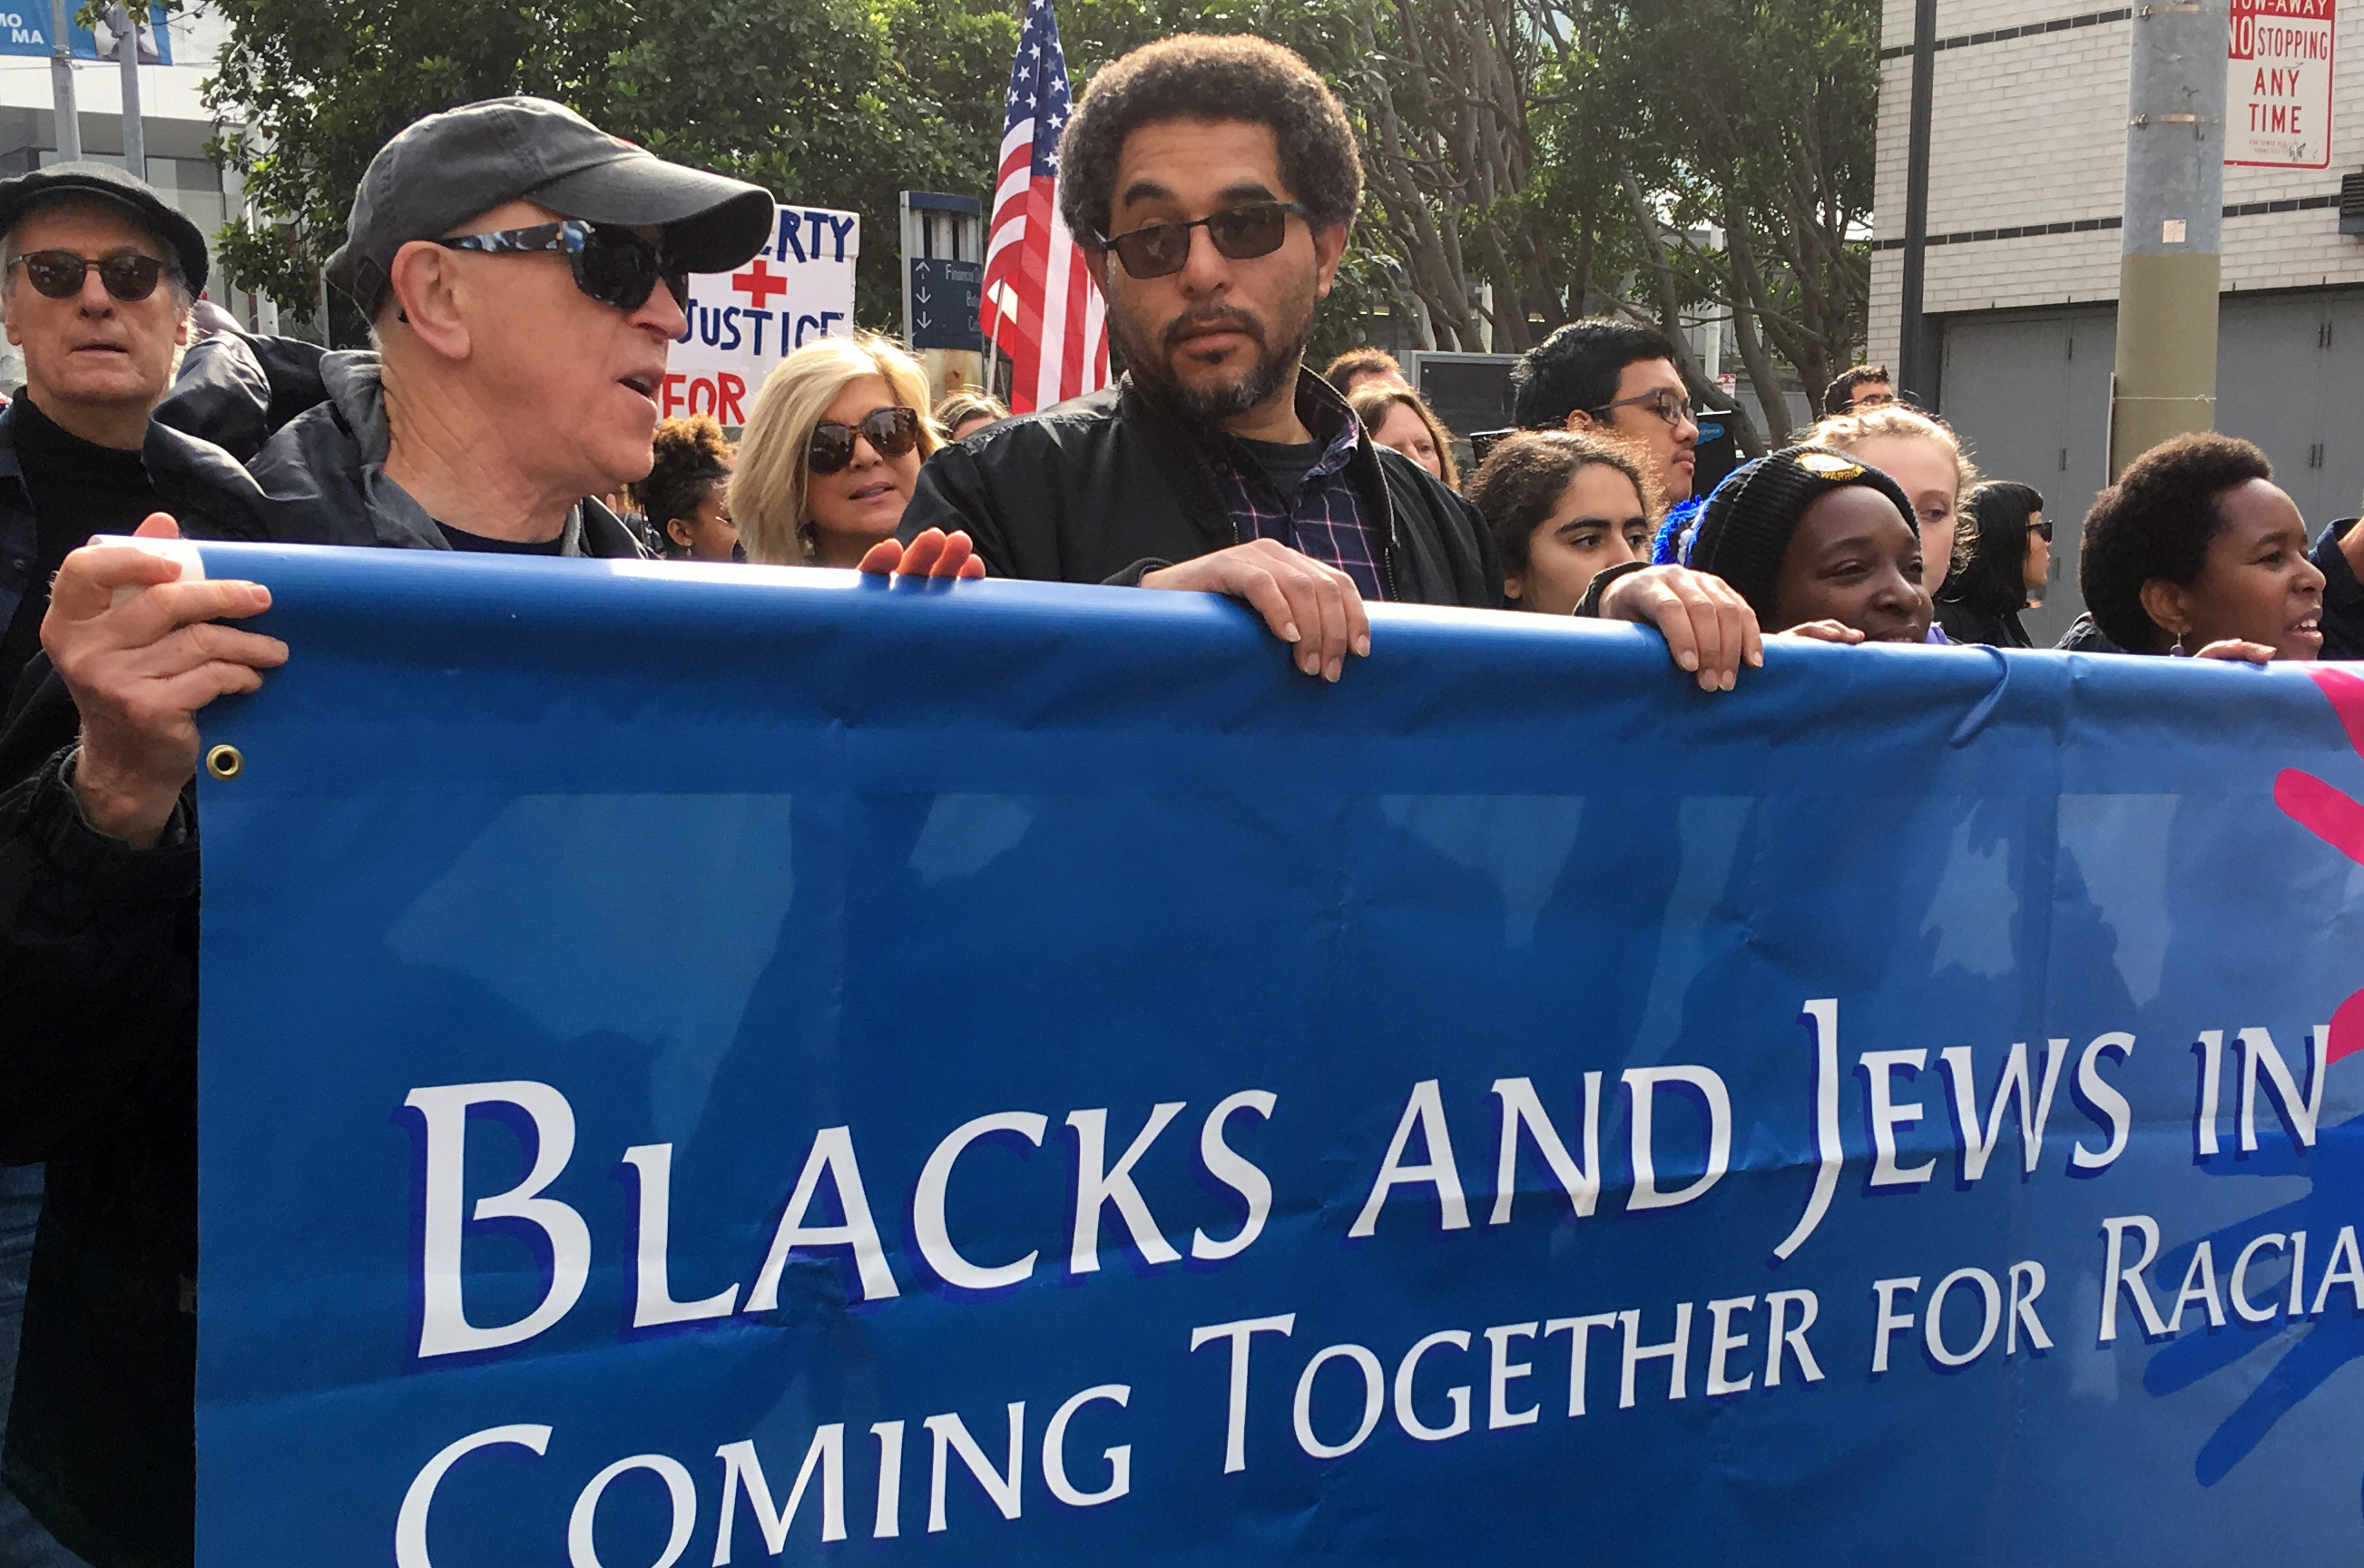 Members of the San Francisco African American-Jewish Unity Group marching on Martin Luther King Jr. Day in 2018. (Photo/Ann Rubin)